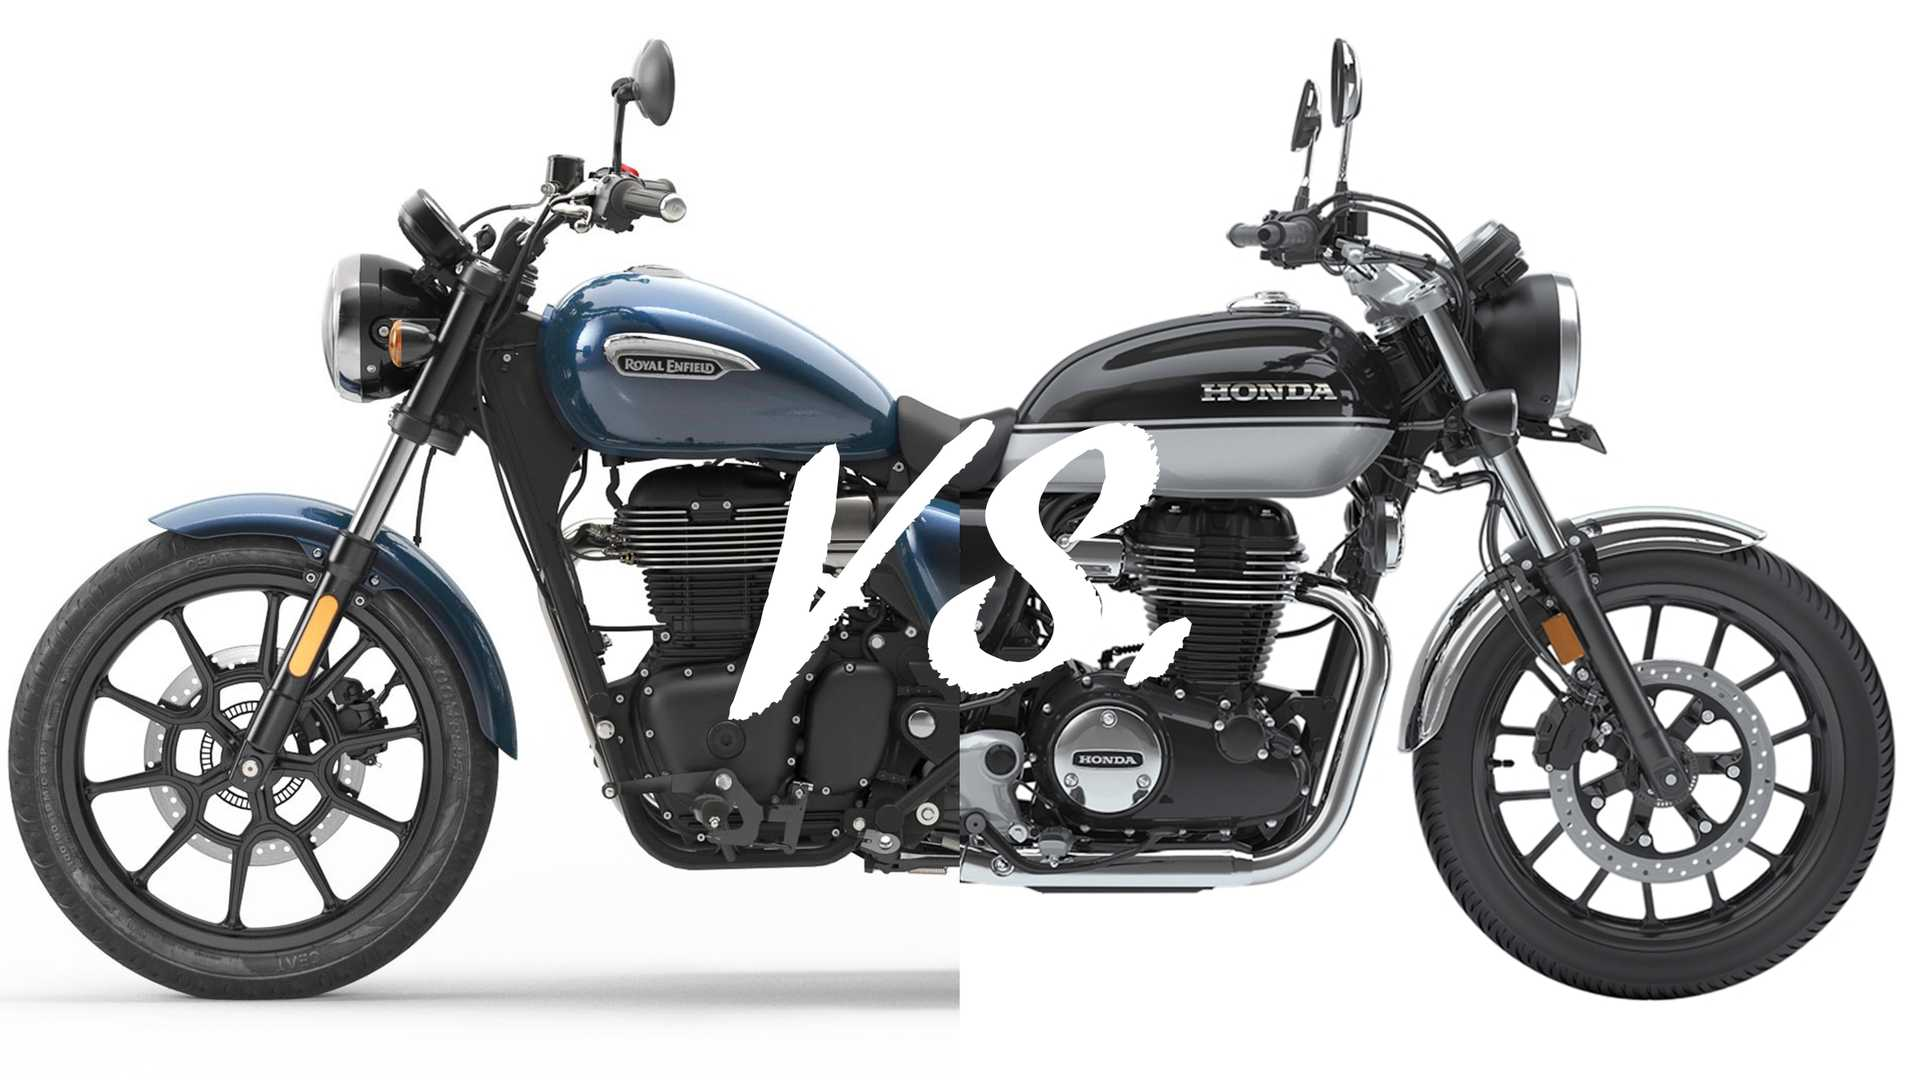 Spec Showdown: Royal Enfield Meteor 350 Vs. Honda H'Ness CB350